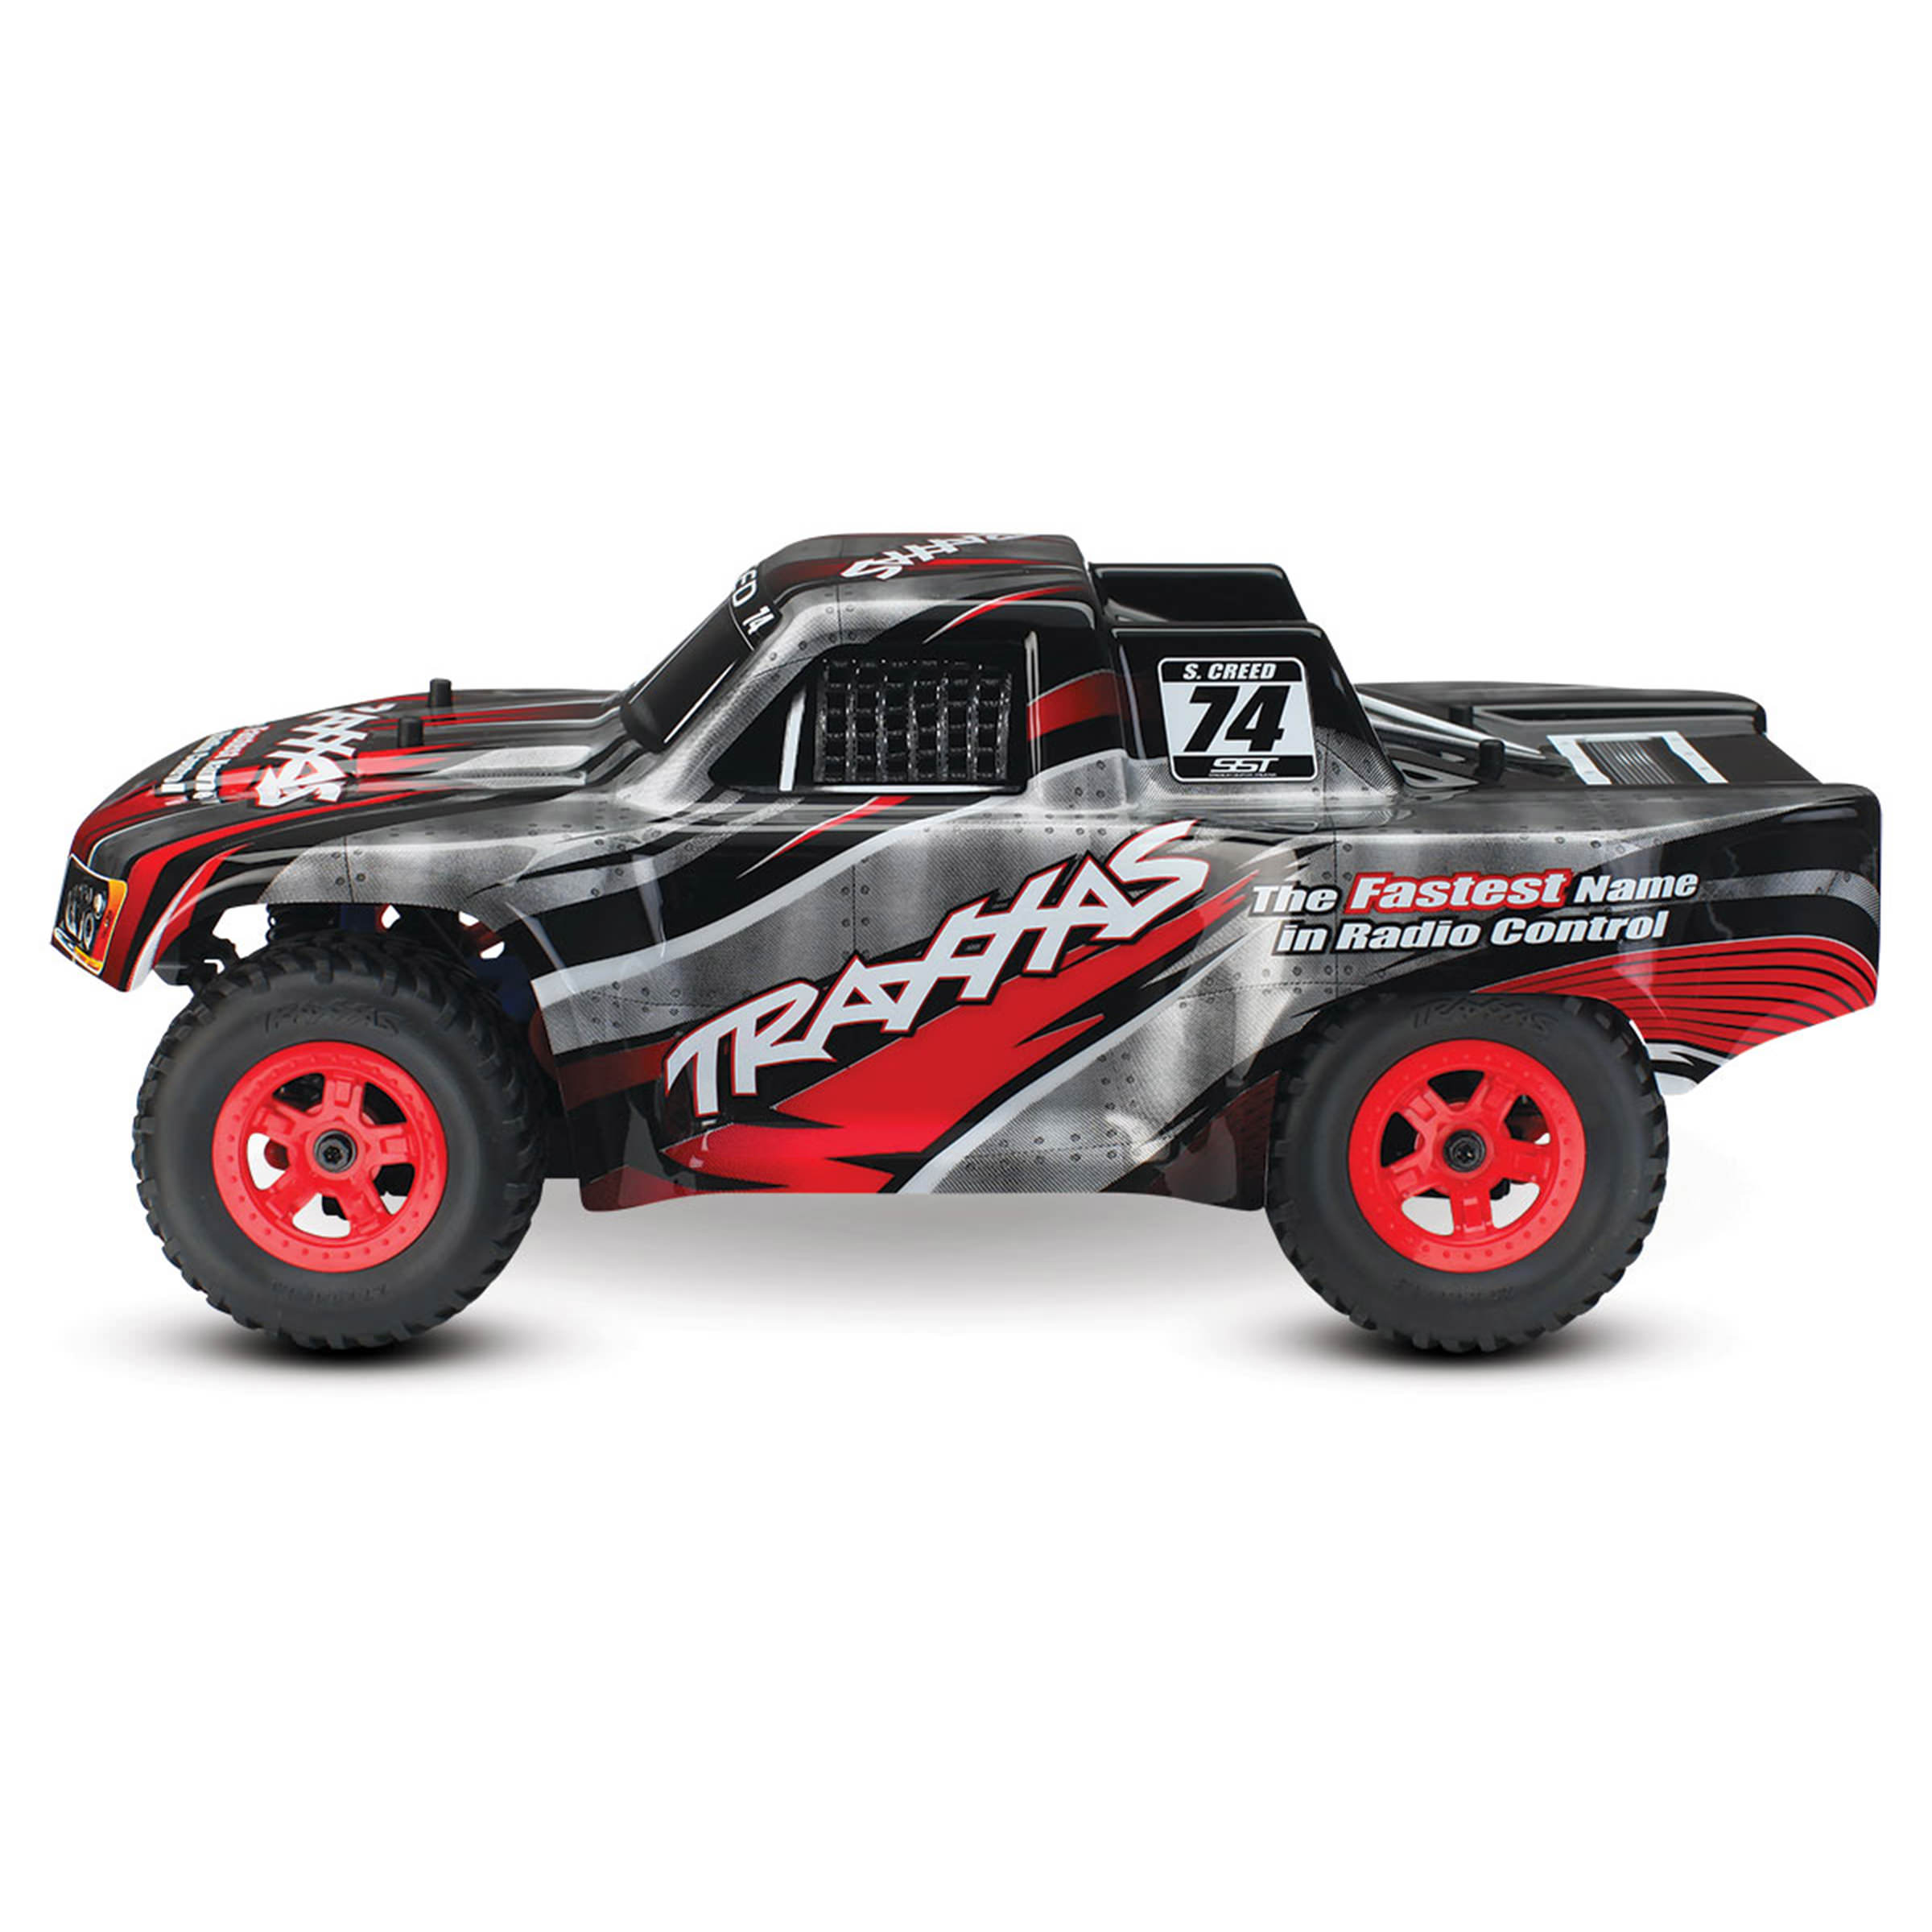 Traxxas 76044 1 Latrax Sheldon Creed Rc Stadium Truck Red